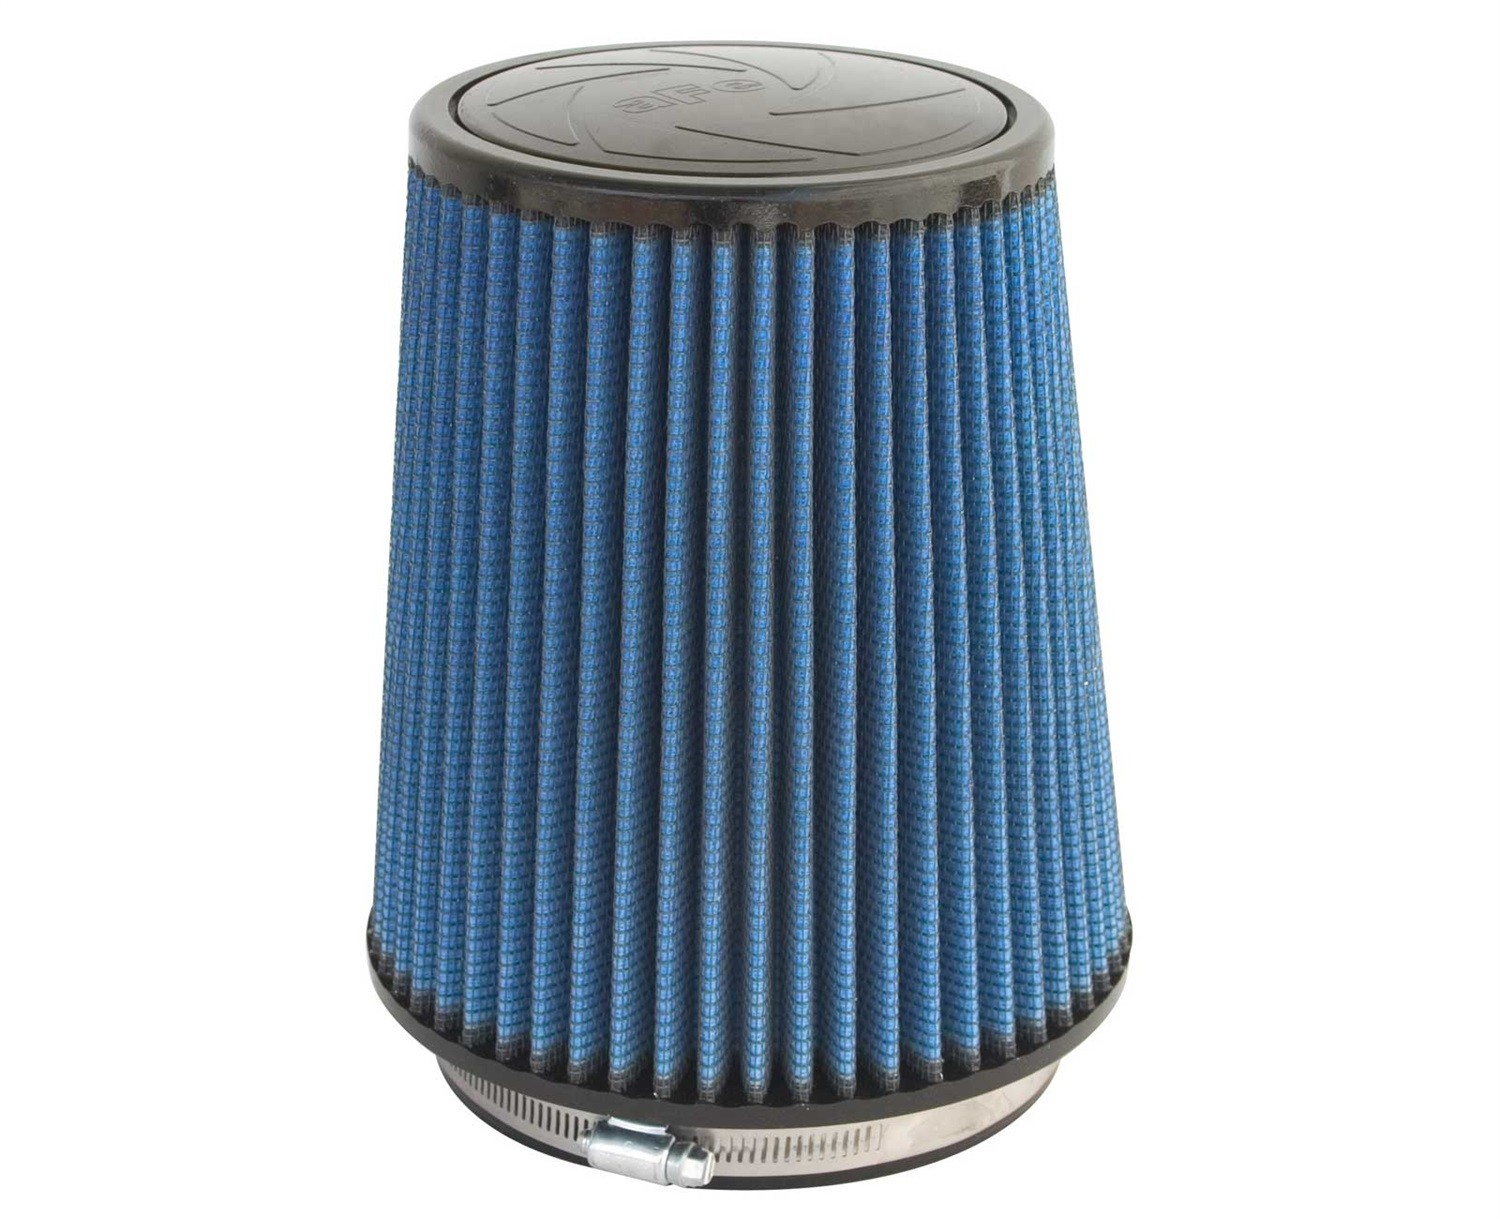 aFe POWER 24-90015 Magnum FLOW Pro 5R Air Filter